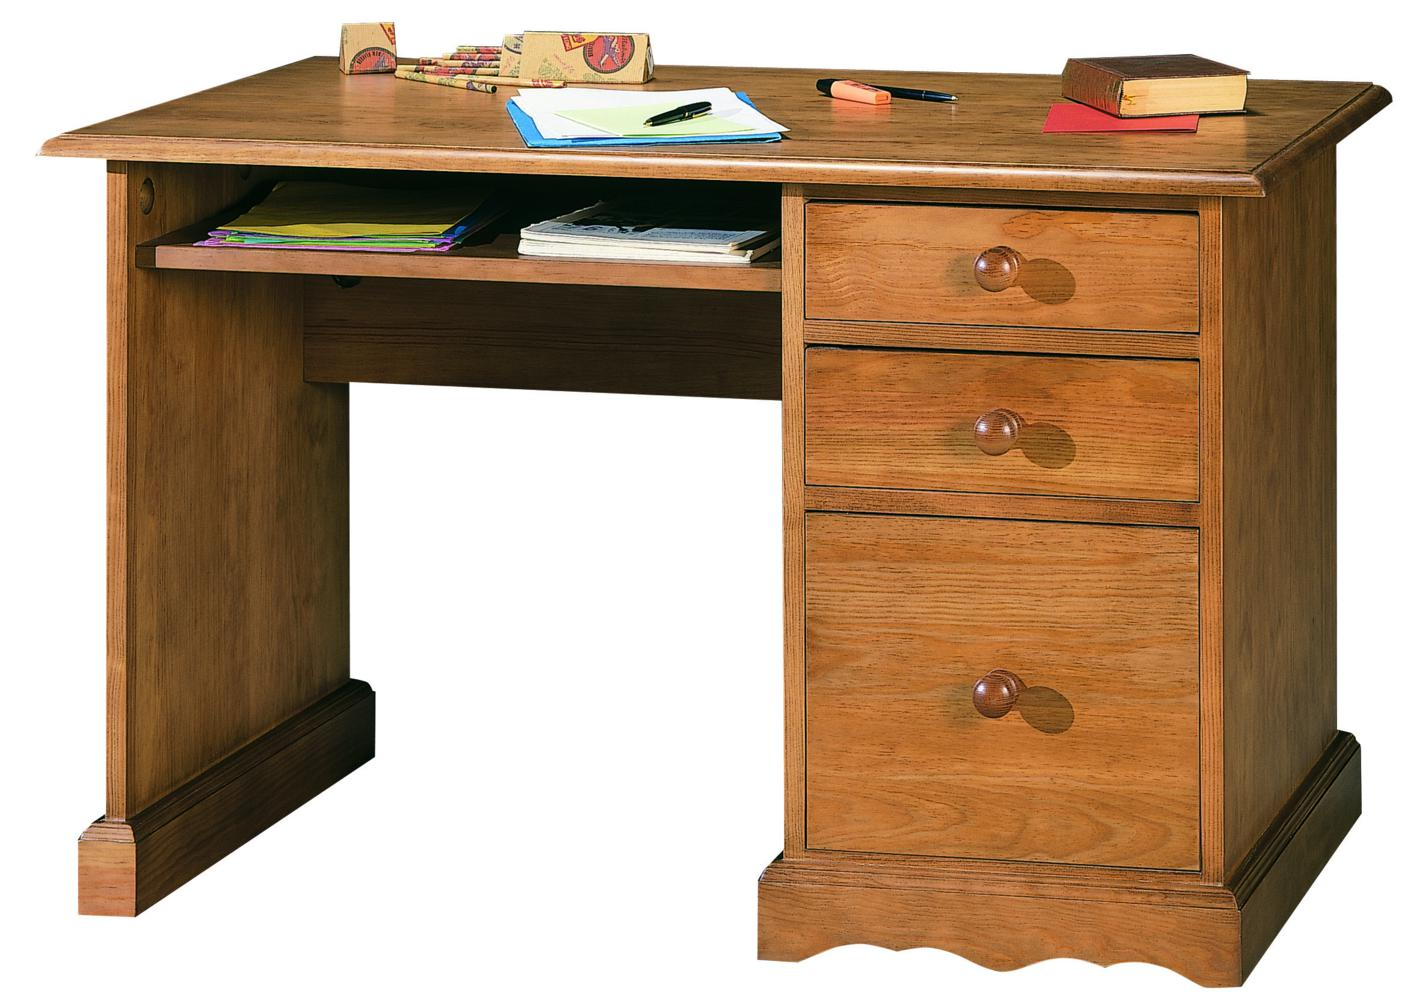 acheter votre bureau en 120 cm 2 caissons chez simeuble. Black Bedroom Furniture Sets. Home Design Ideas